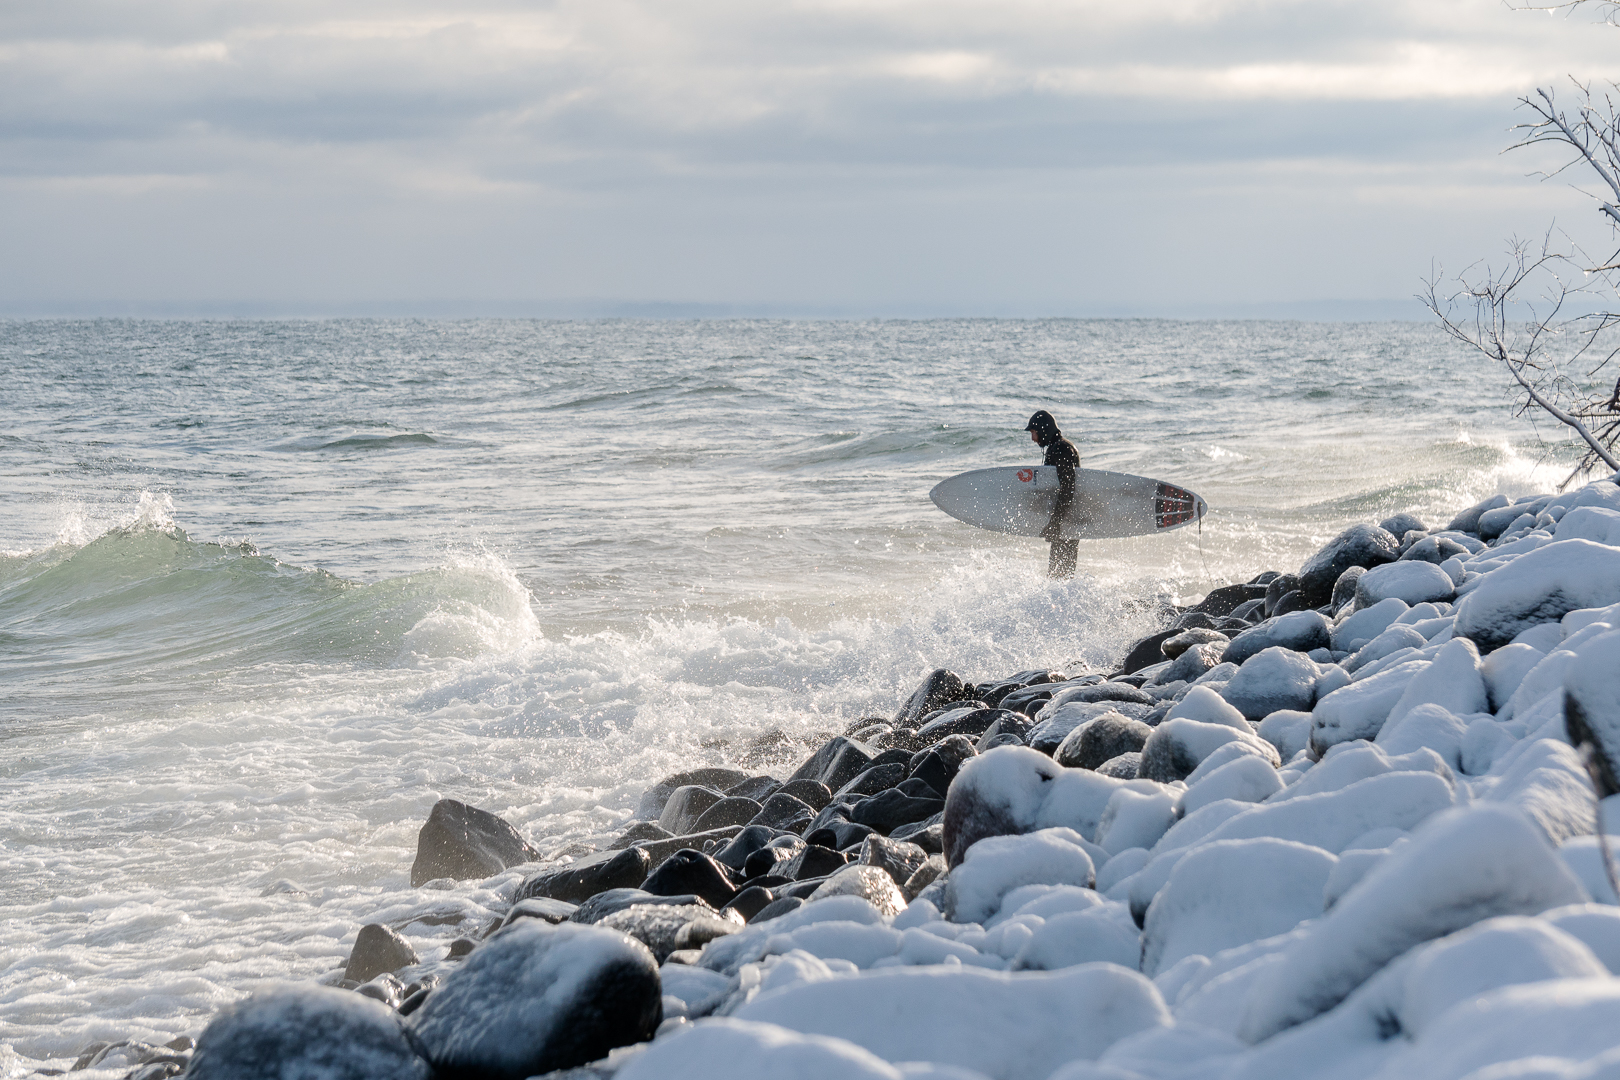 stoney-point-surfing-duluth-herron-05035.jpg